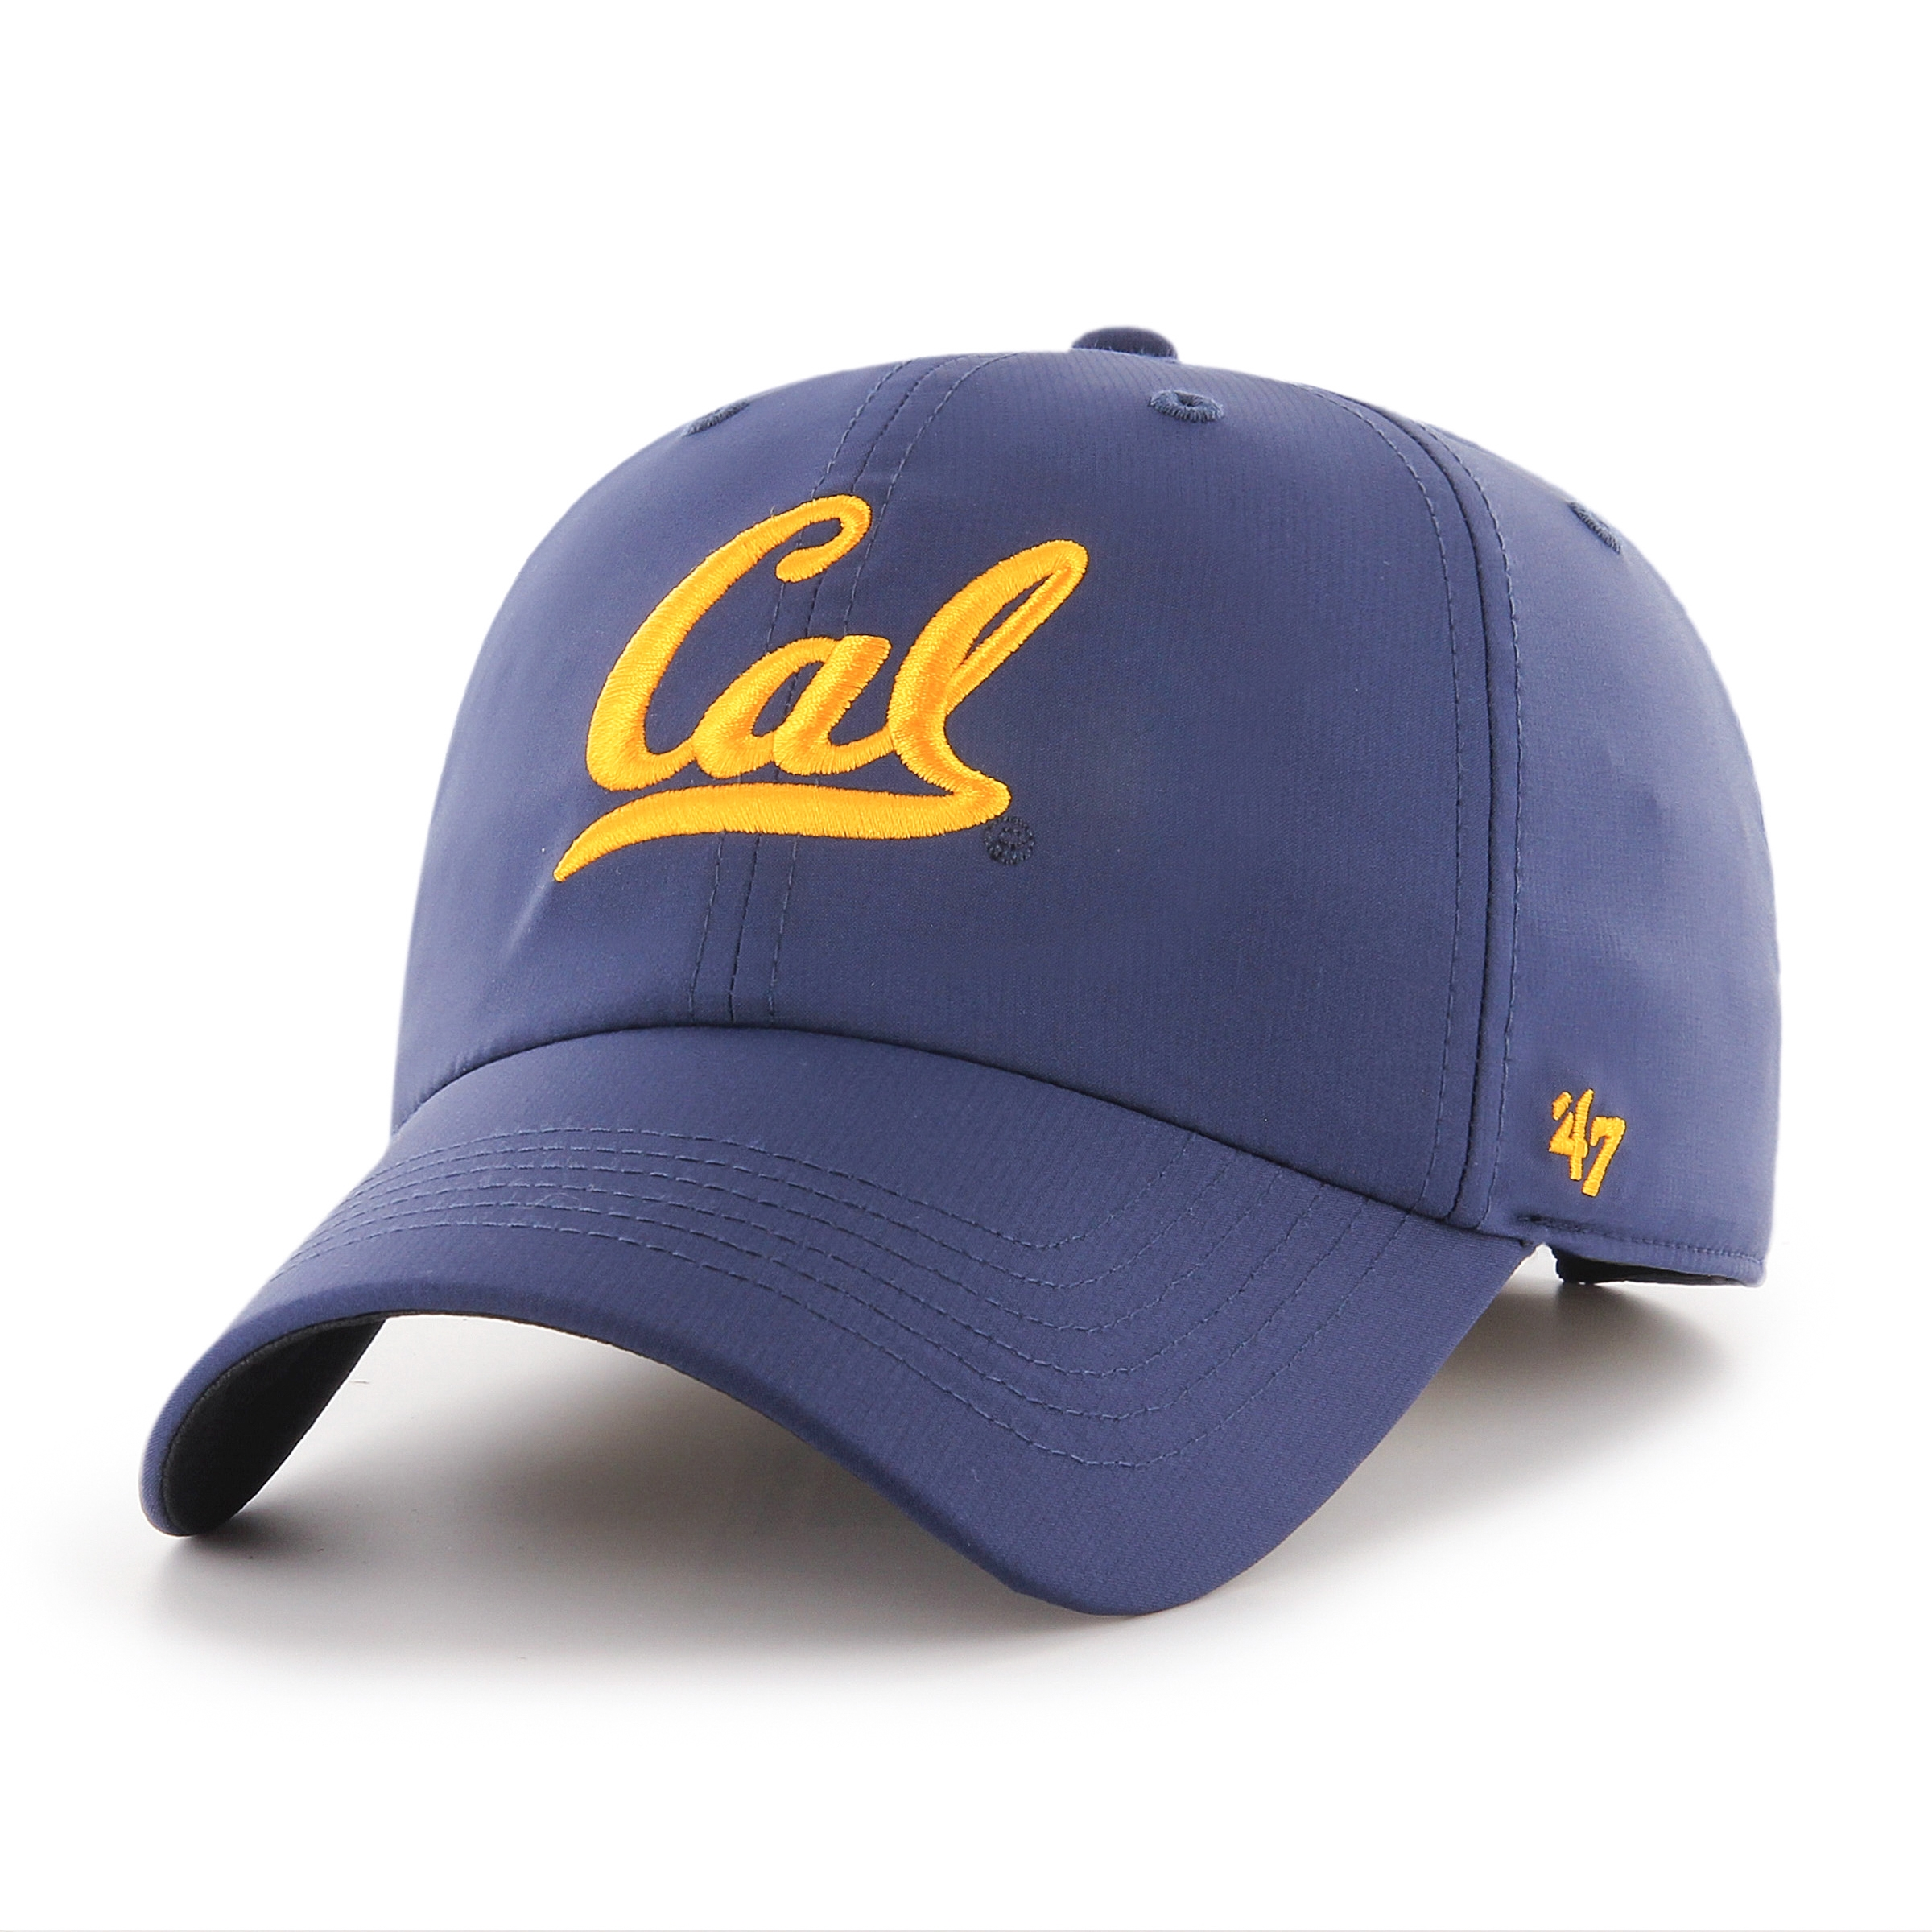 Cal Bears '47 Repetition Clean Up Cal Logo